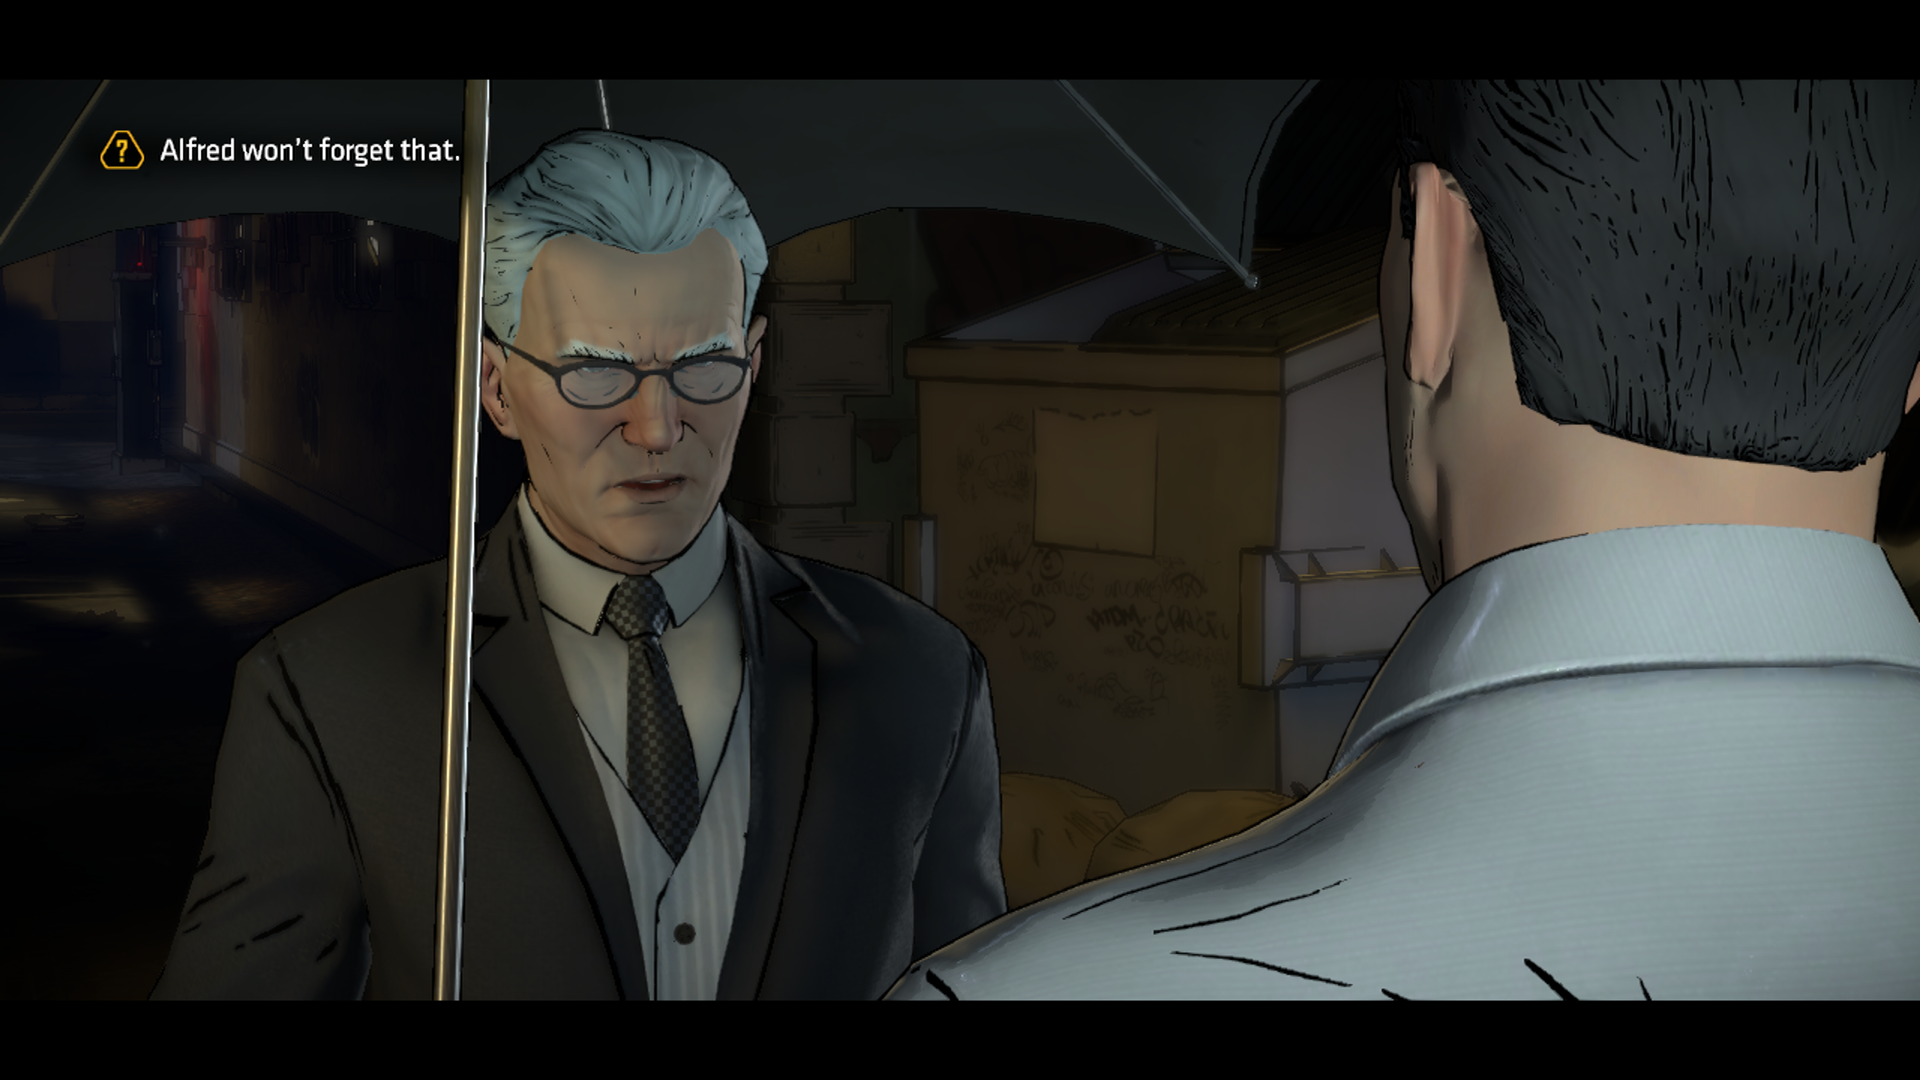 batman-the-telltale-series-episode-1-realm-of-shadows-13